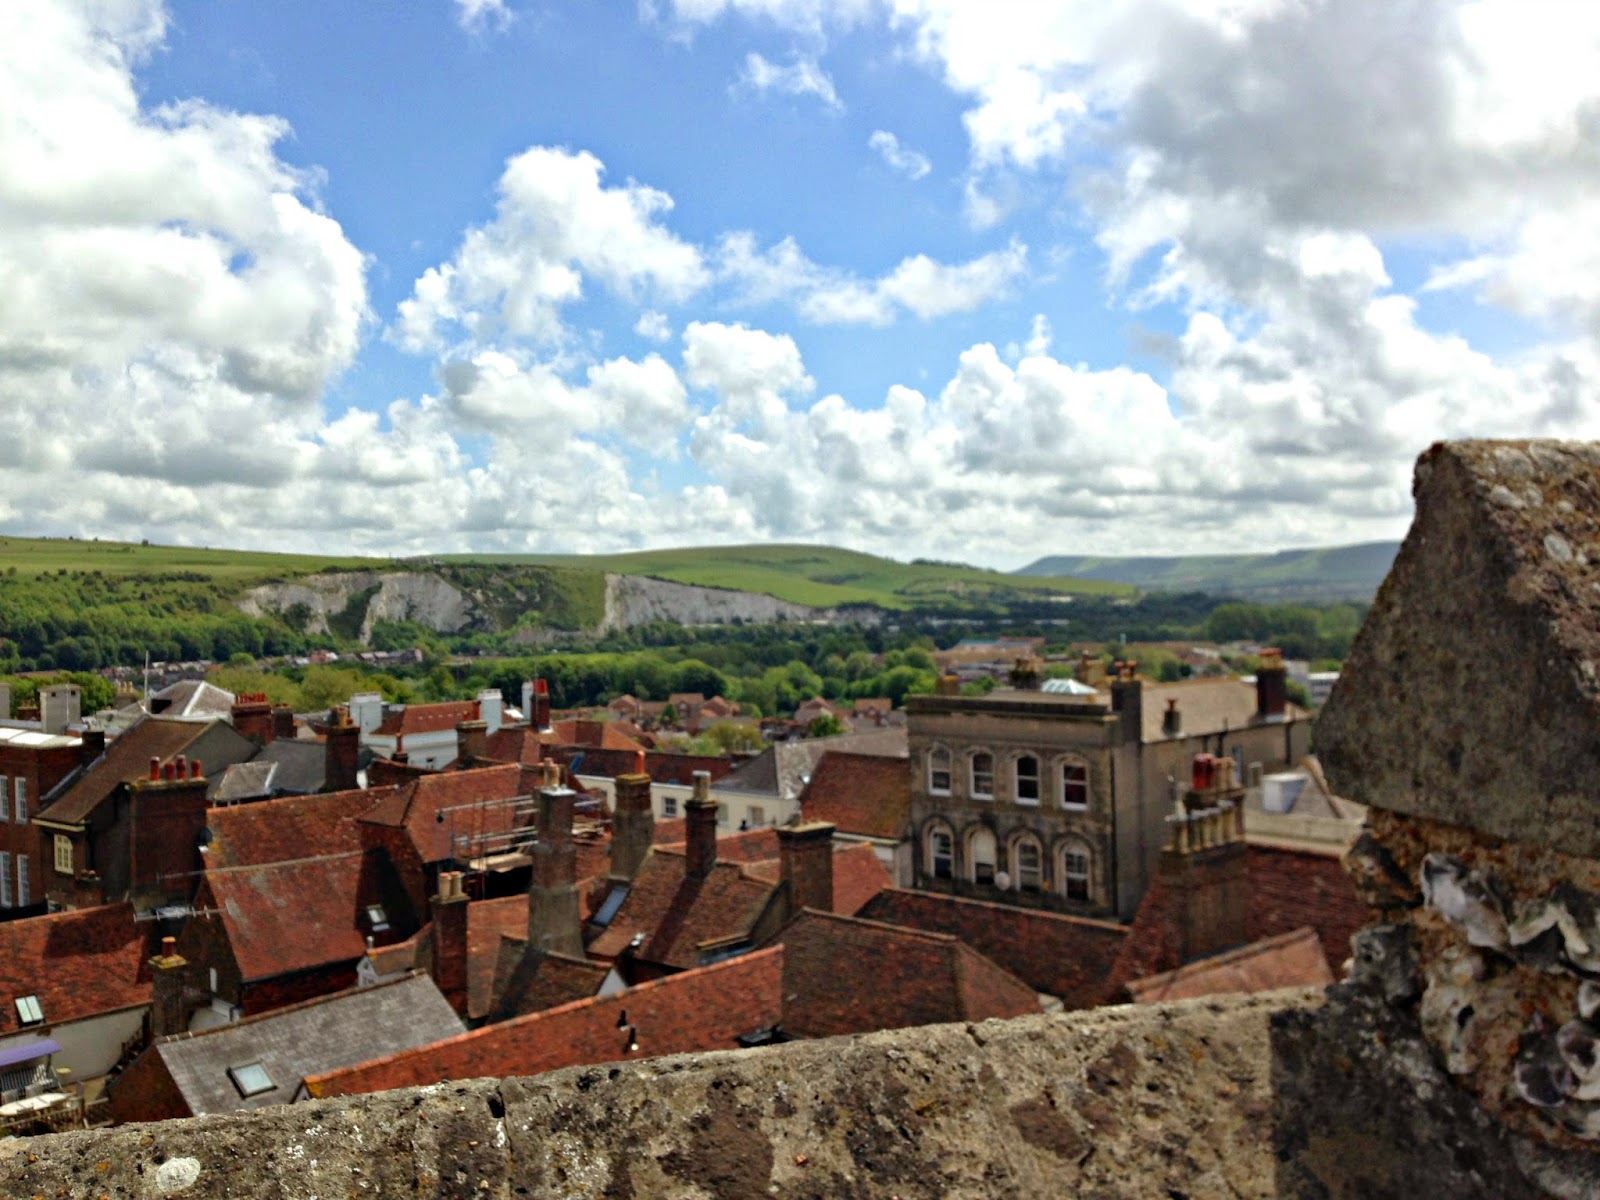 A view of Lewes town and East Sussex hills from the Castle